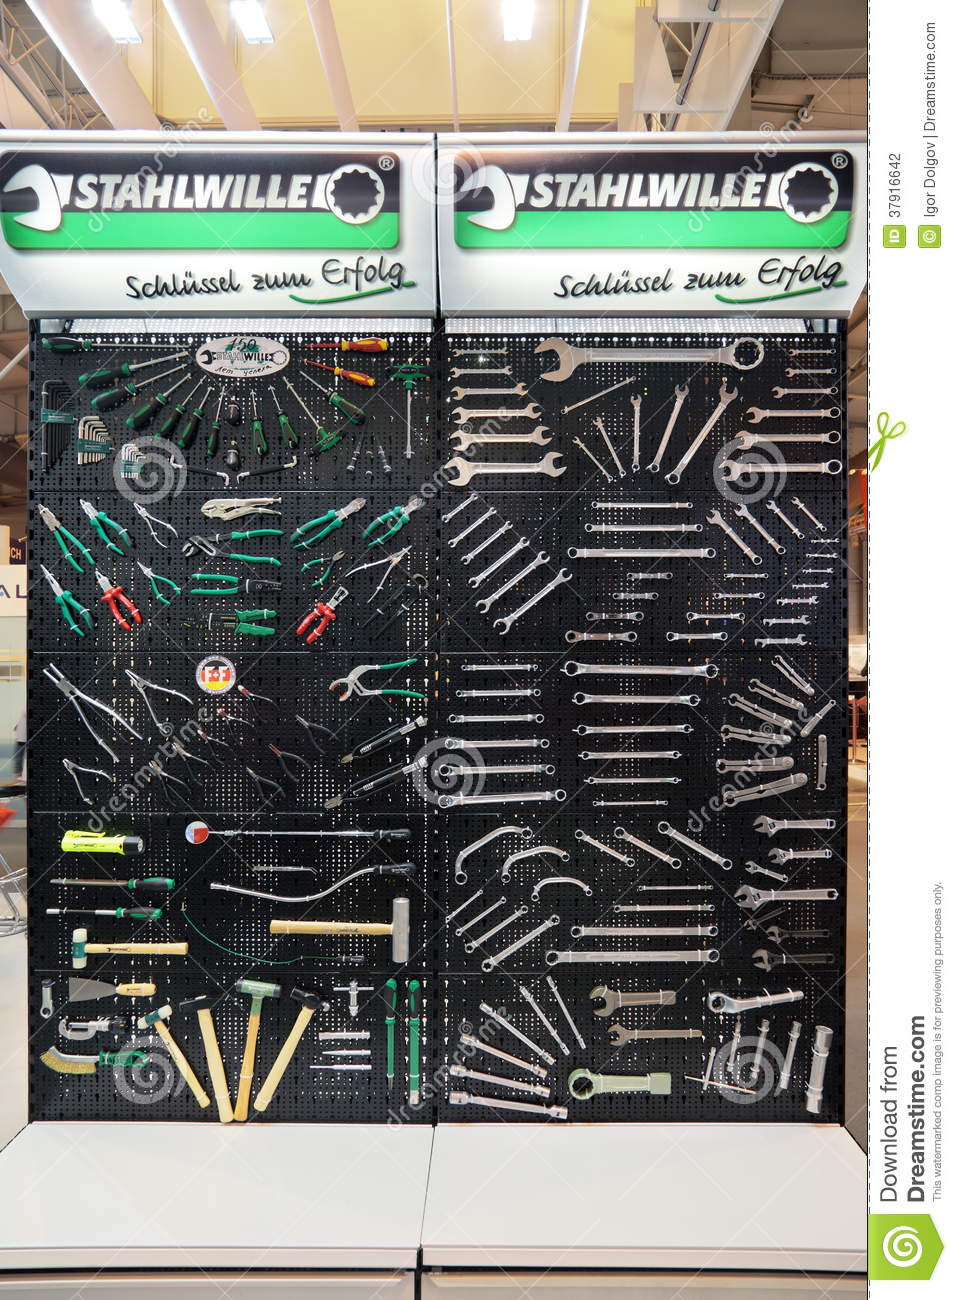 stahlwille tools editorial photography